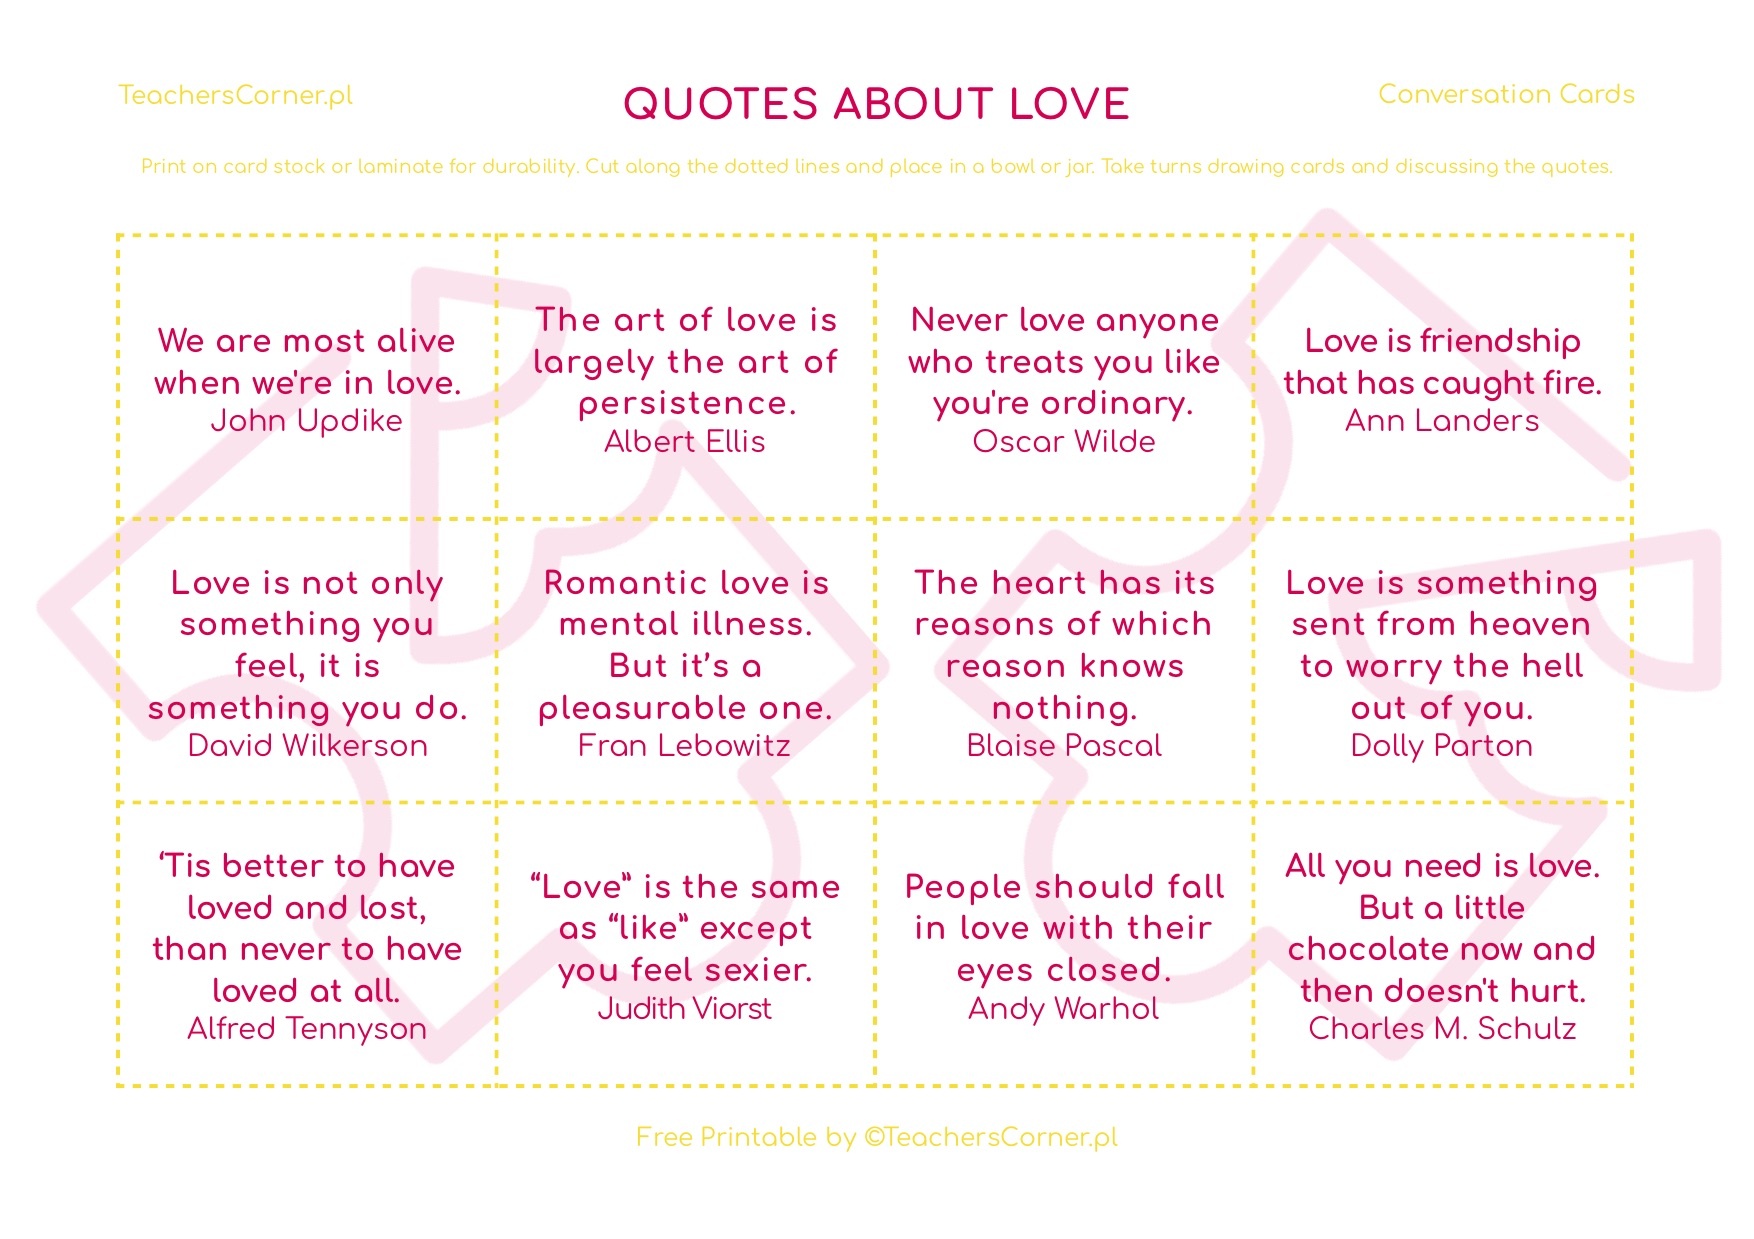 Quotes about love - karty konwersacyjne